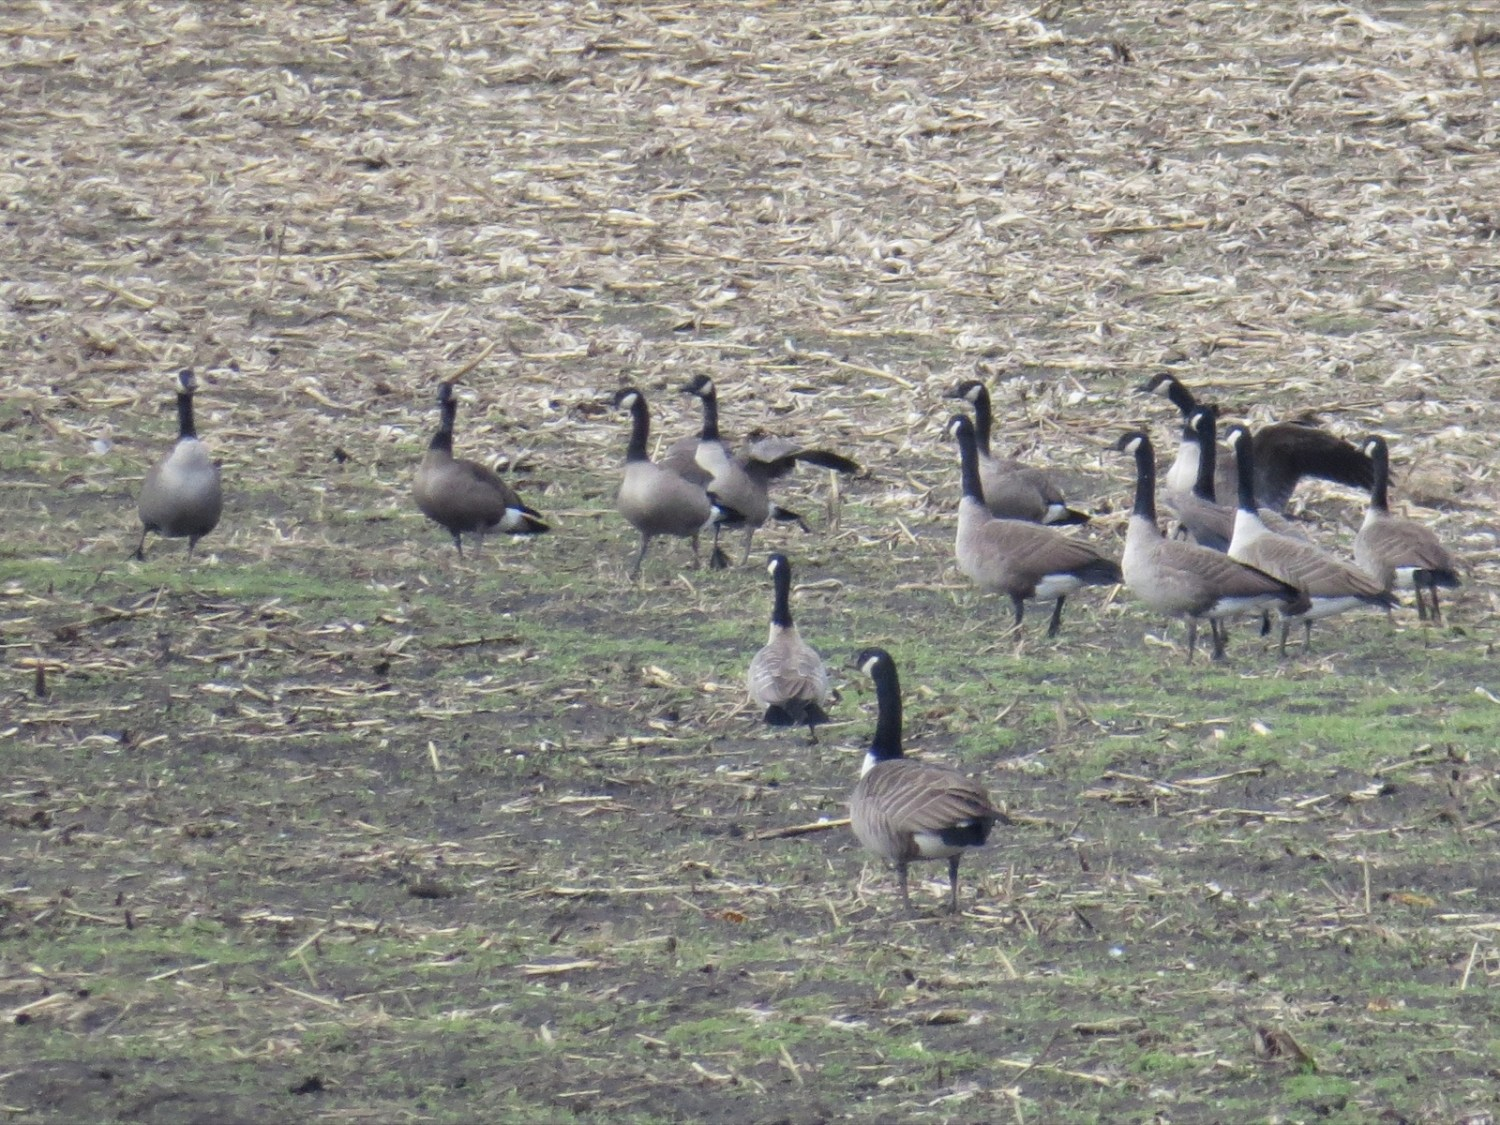 Canada Goose (front) and Cackling Goose (second from front), with a mix of intermediate birds beyond. Acton, MA, 7 Nov 2014. Photo copyright David Sibley